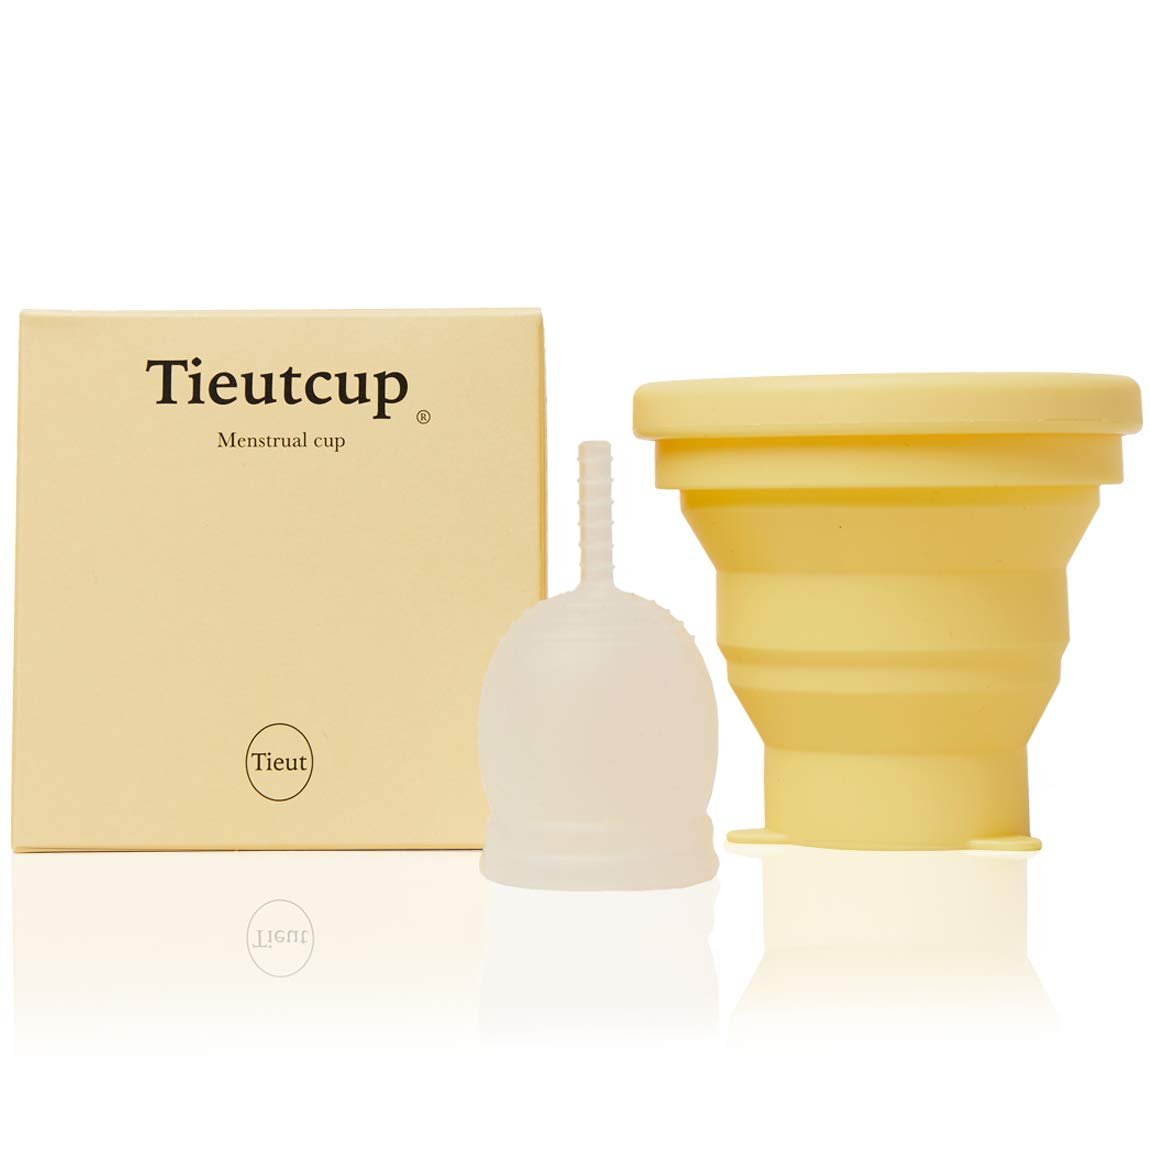 Tieut Cup Pack of Compressible Container and Period Cup Large Size (42ml) - Womens Vagina & Menstrual Period Cups and Cup Holder Both Reusable Made with Silicone Hold up to 12 Hours